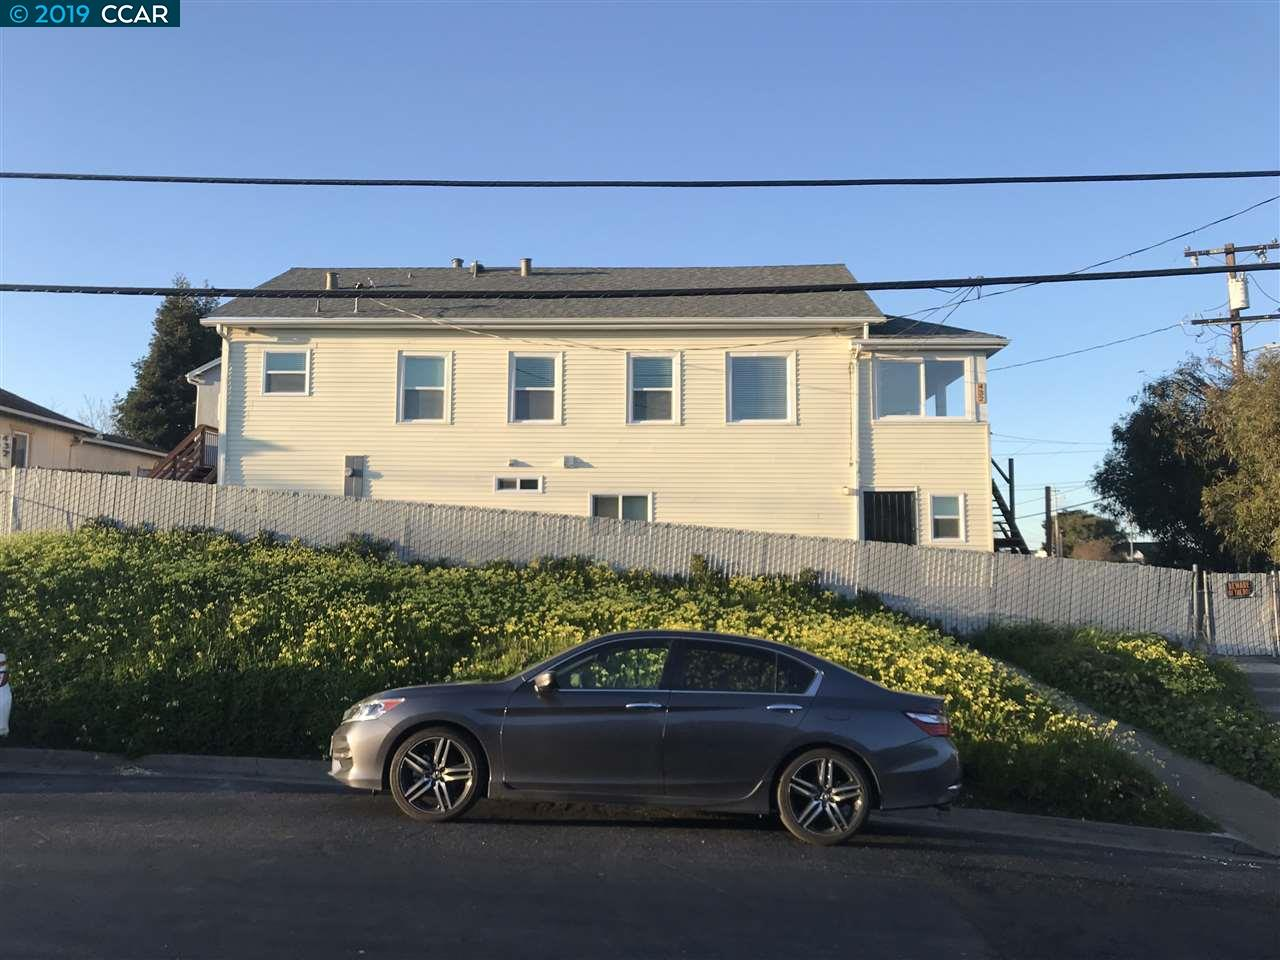 432 3RD ST, RODEO, CA 94572